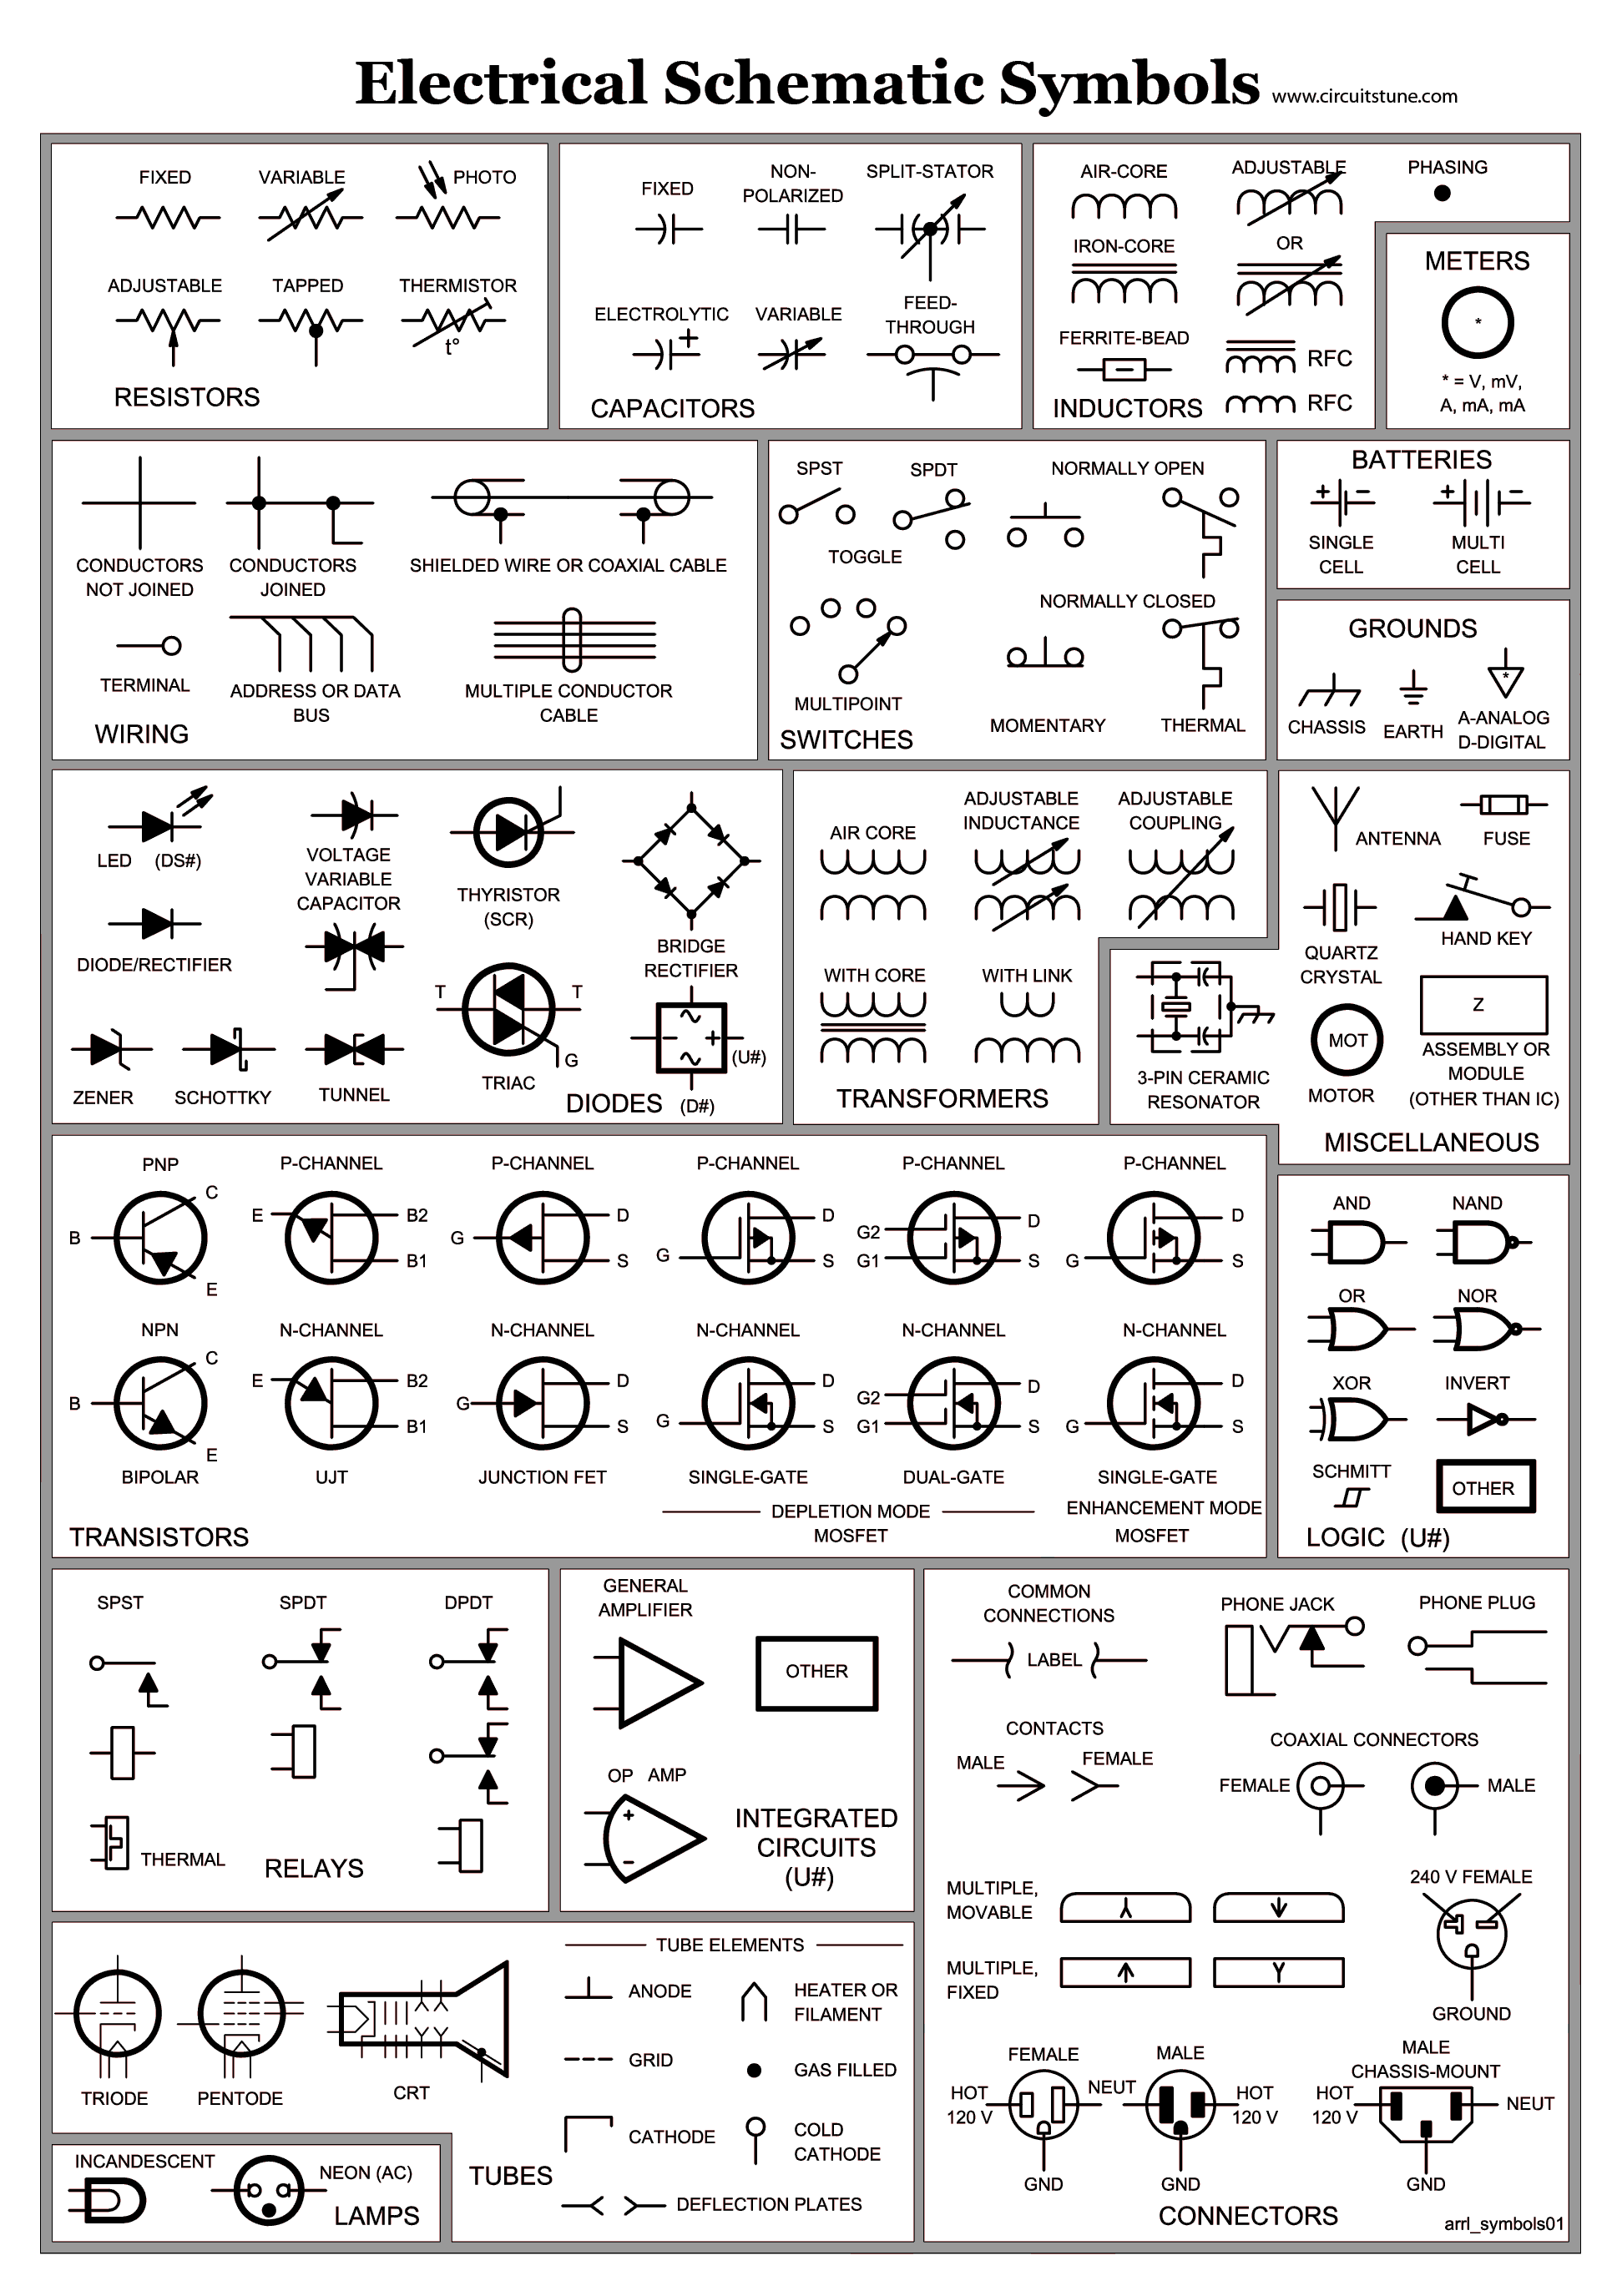 Electrical schematic symbols trusted wiring diagram electrical schematic symbols wire diagram symbols automotive wiring lighting schematic symbols electrical schematic symbols asfbconference2016 Gallery